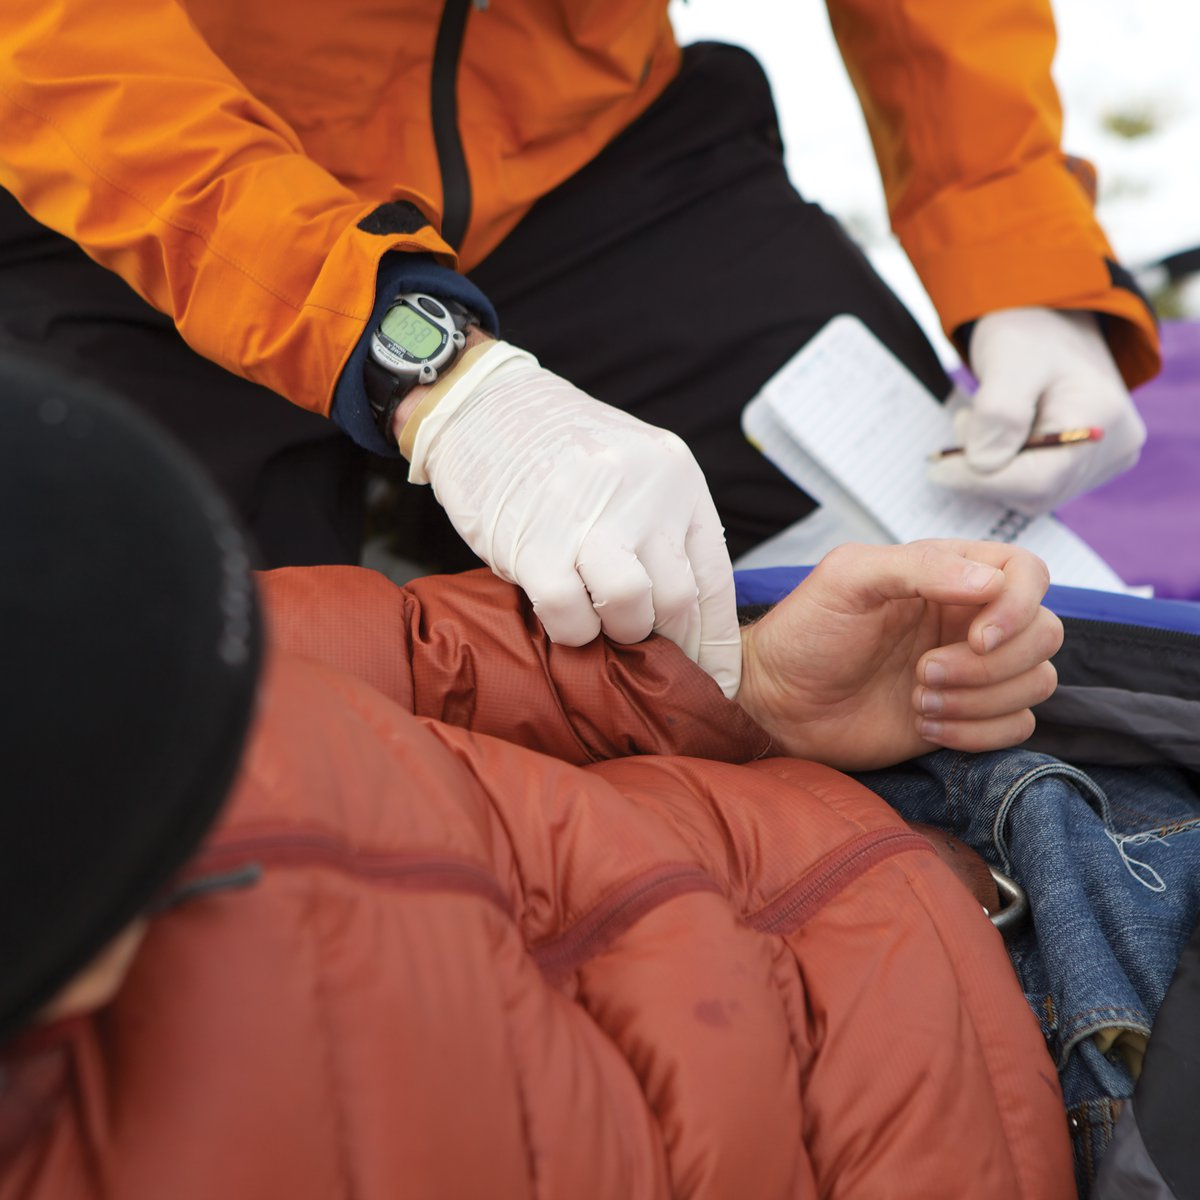 Checking a patient's pulse